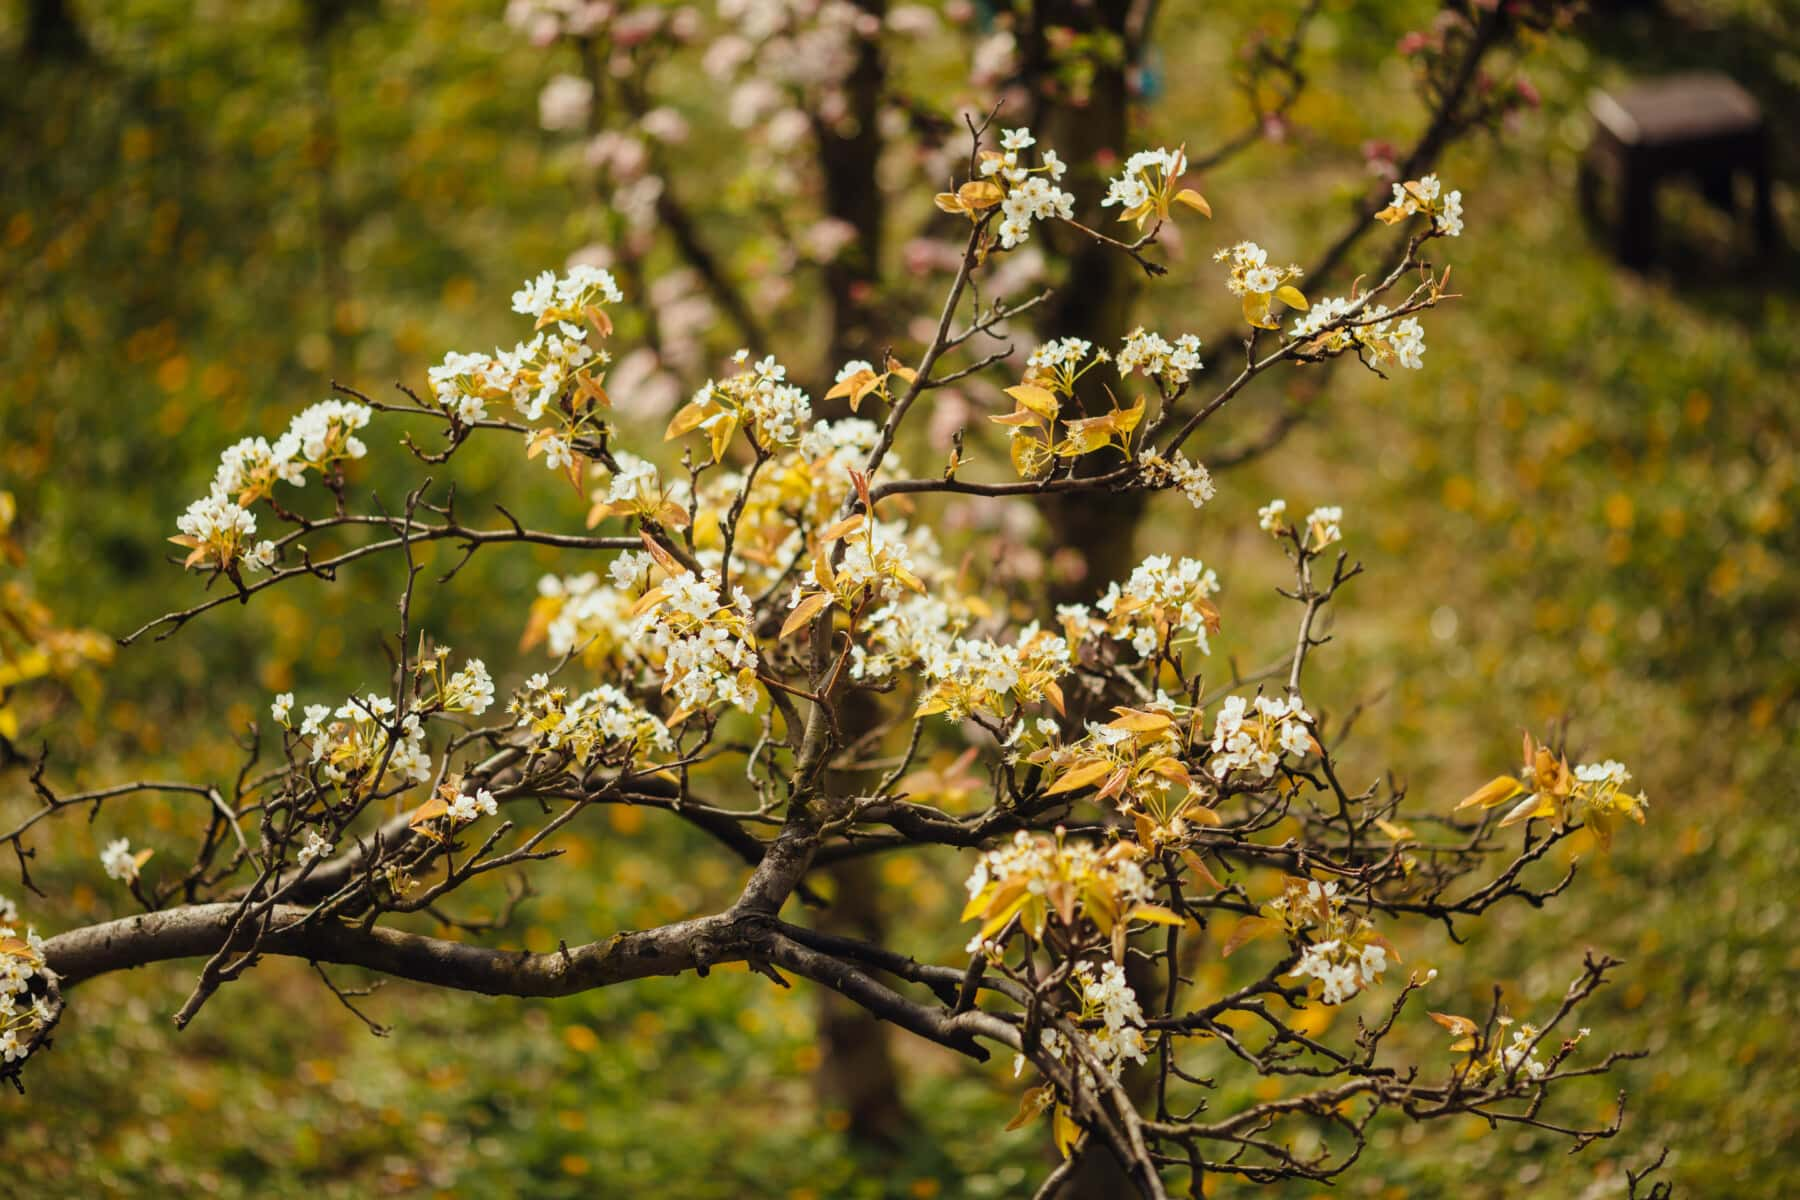 fruit tree, pear, tree, orchard, spring time, plant, leaf, flower, autumn, nature